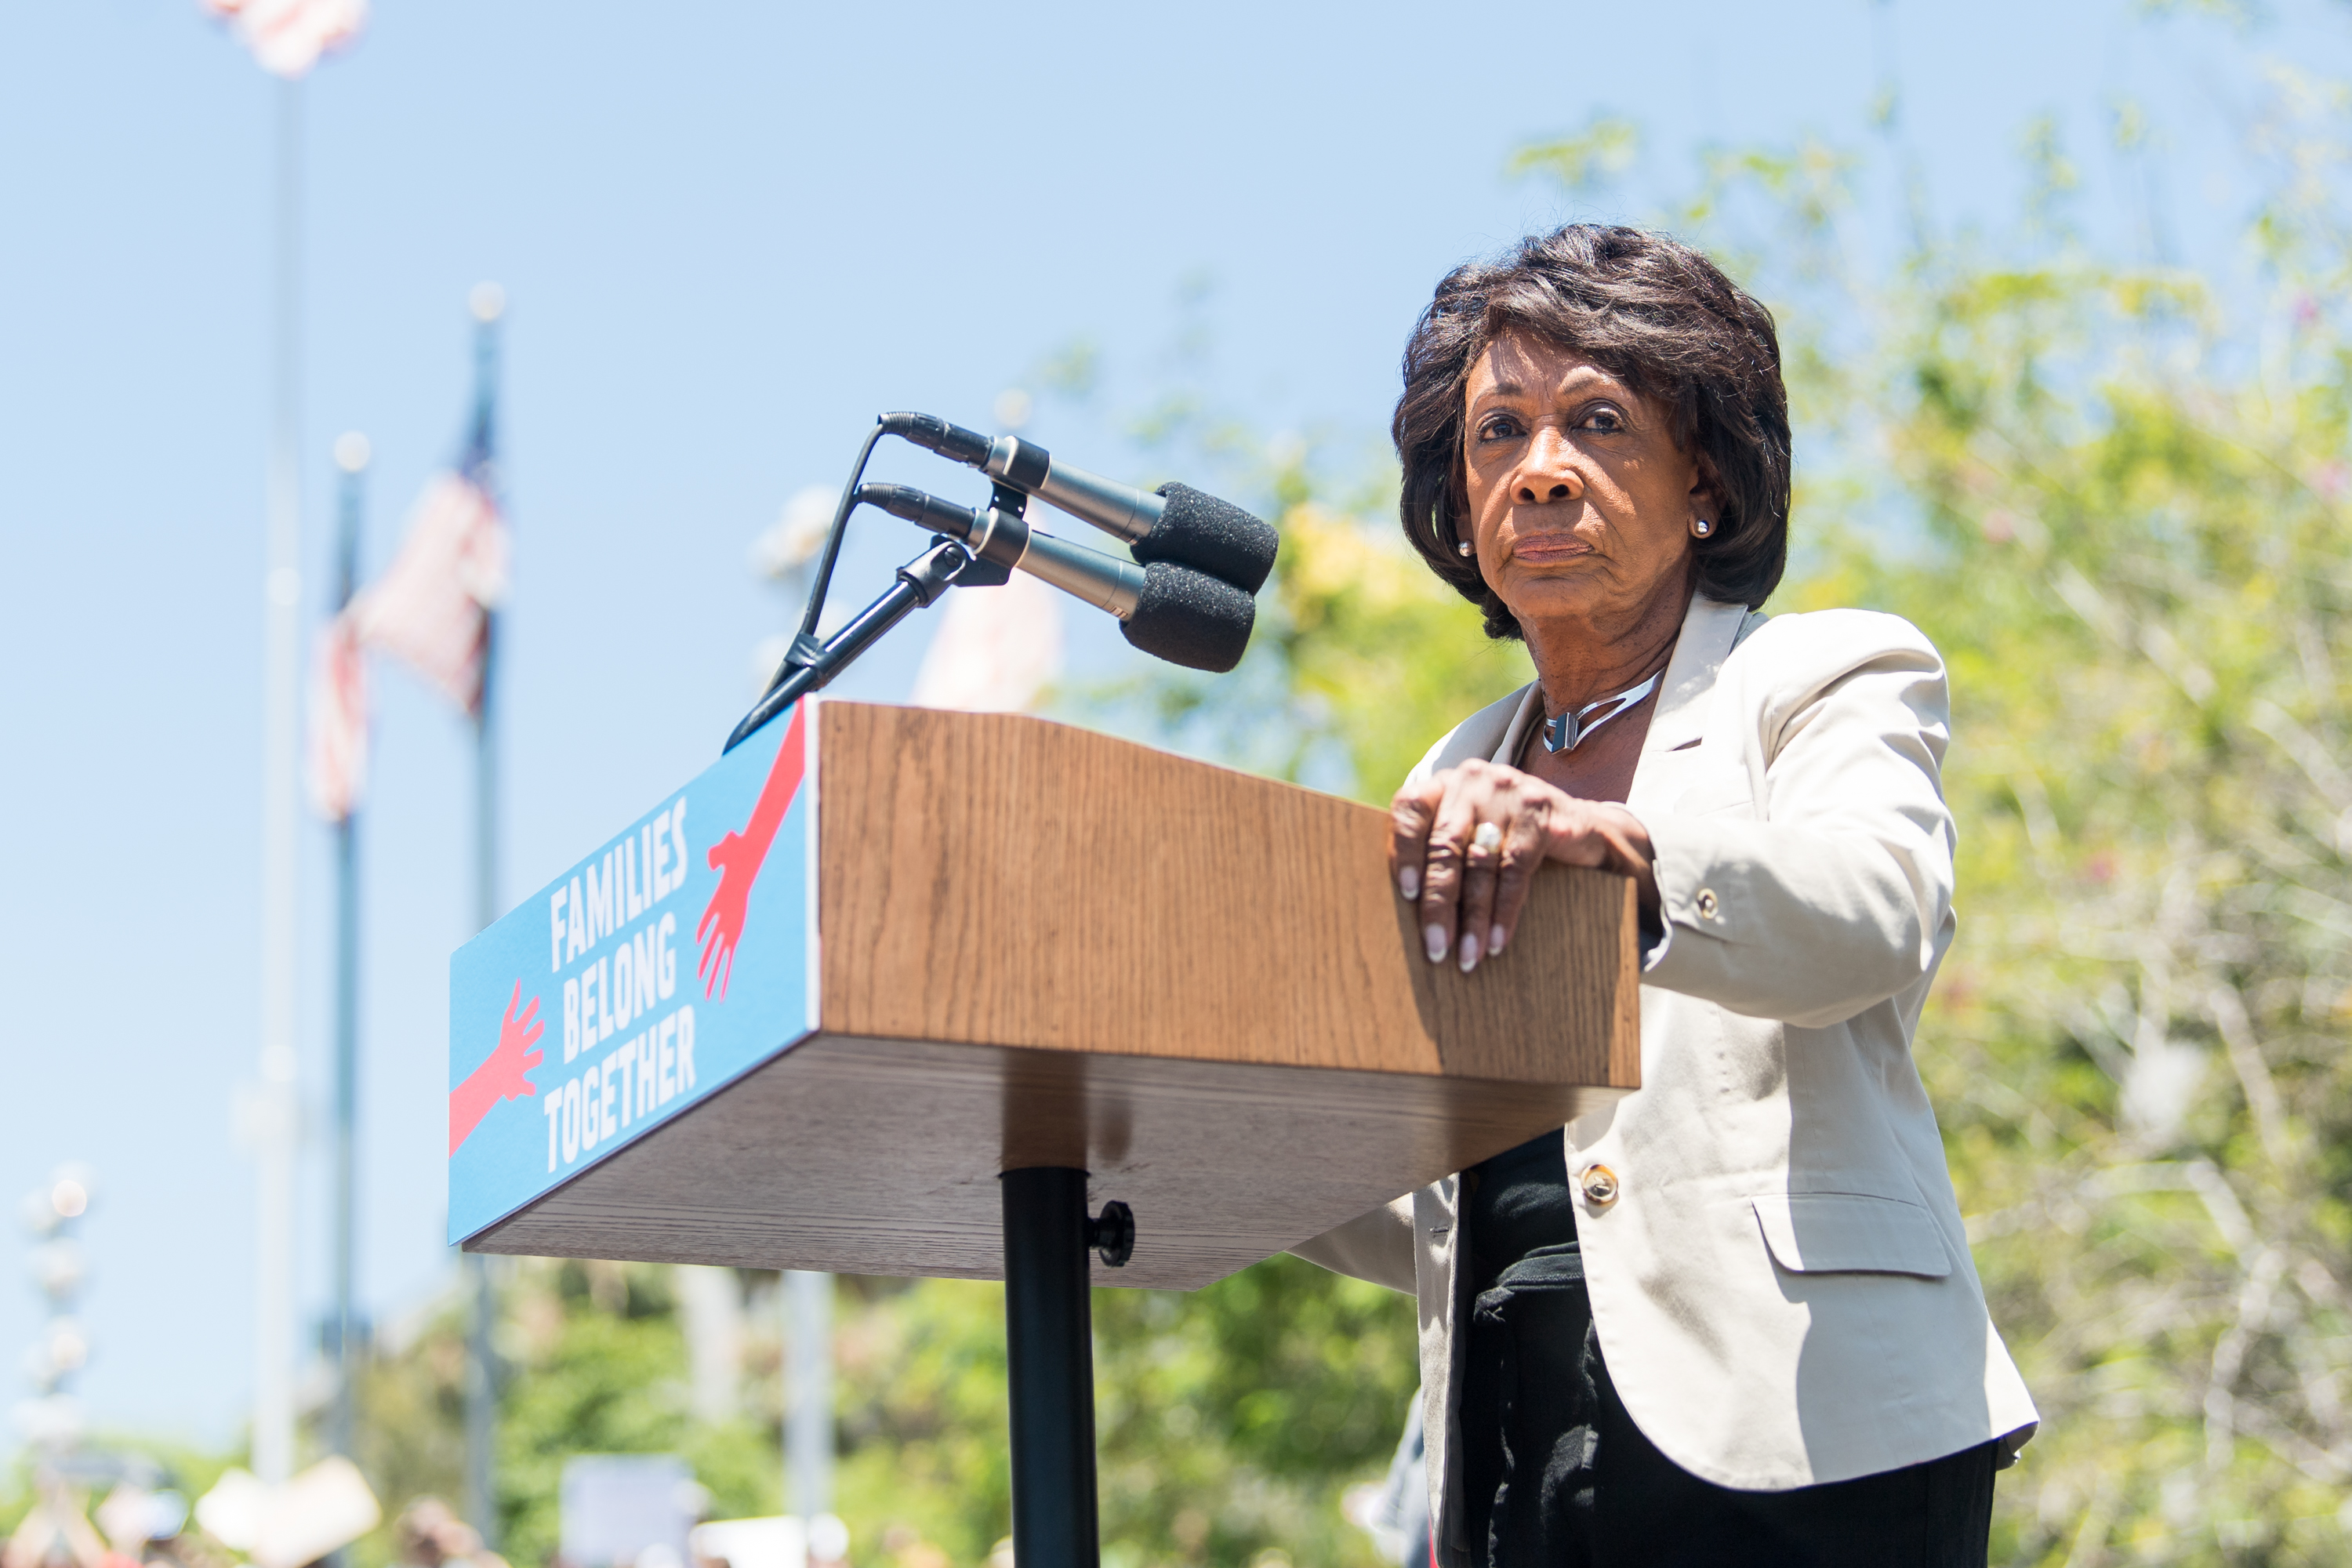 Maxine Waters speaks onstage at 'Families Belong Together - Freedom for Immigrants March Los Angeles' at Los Angeles City Hall on June 30, 2018 in Los Angeles, California. Emma McIntyre/Getty Images for Families Belong Together LA